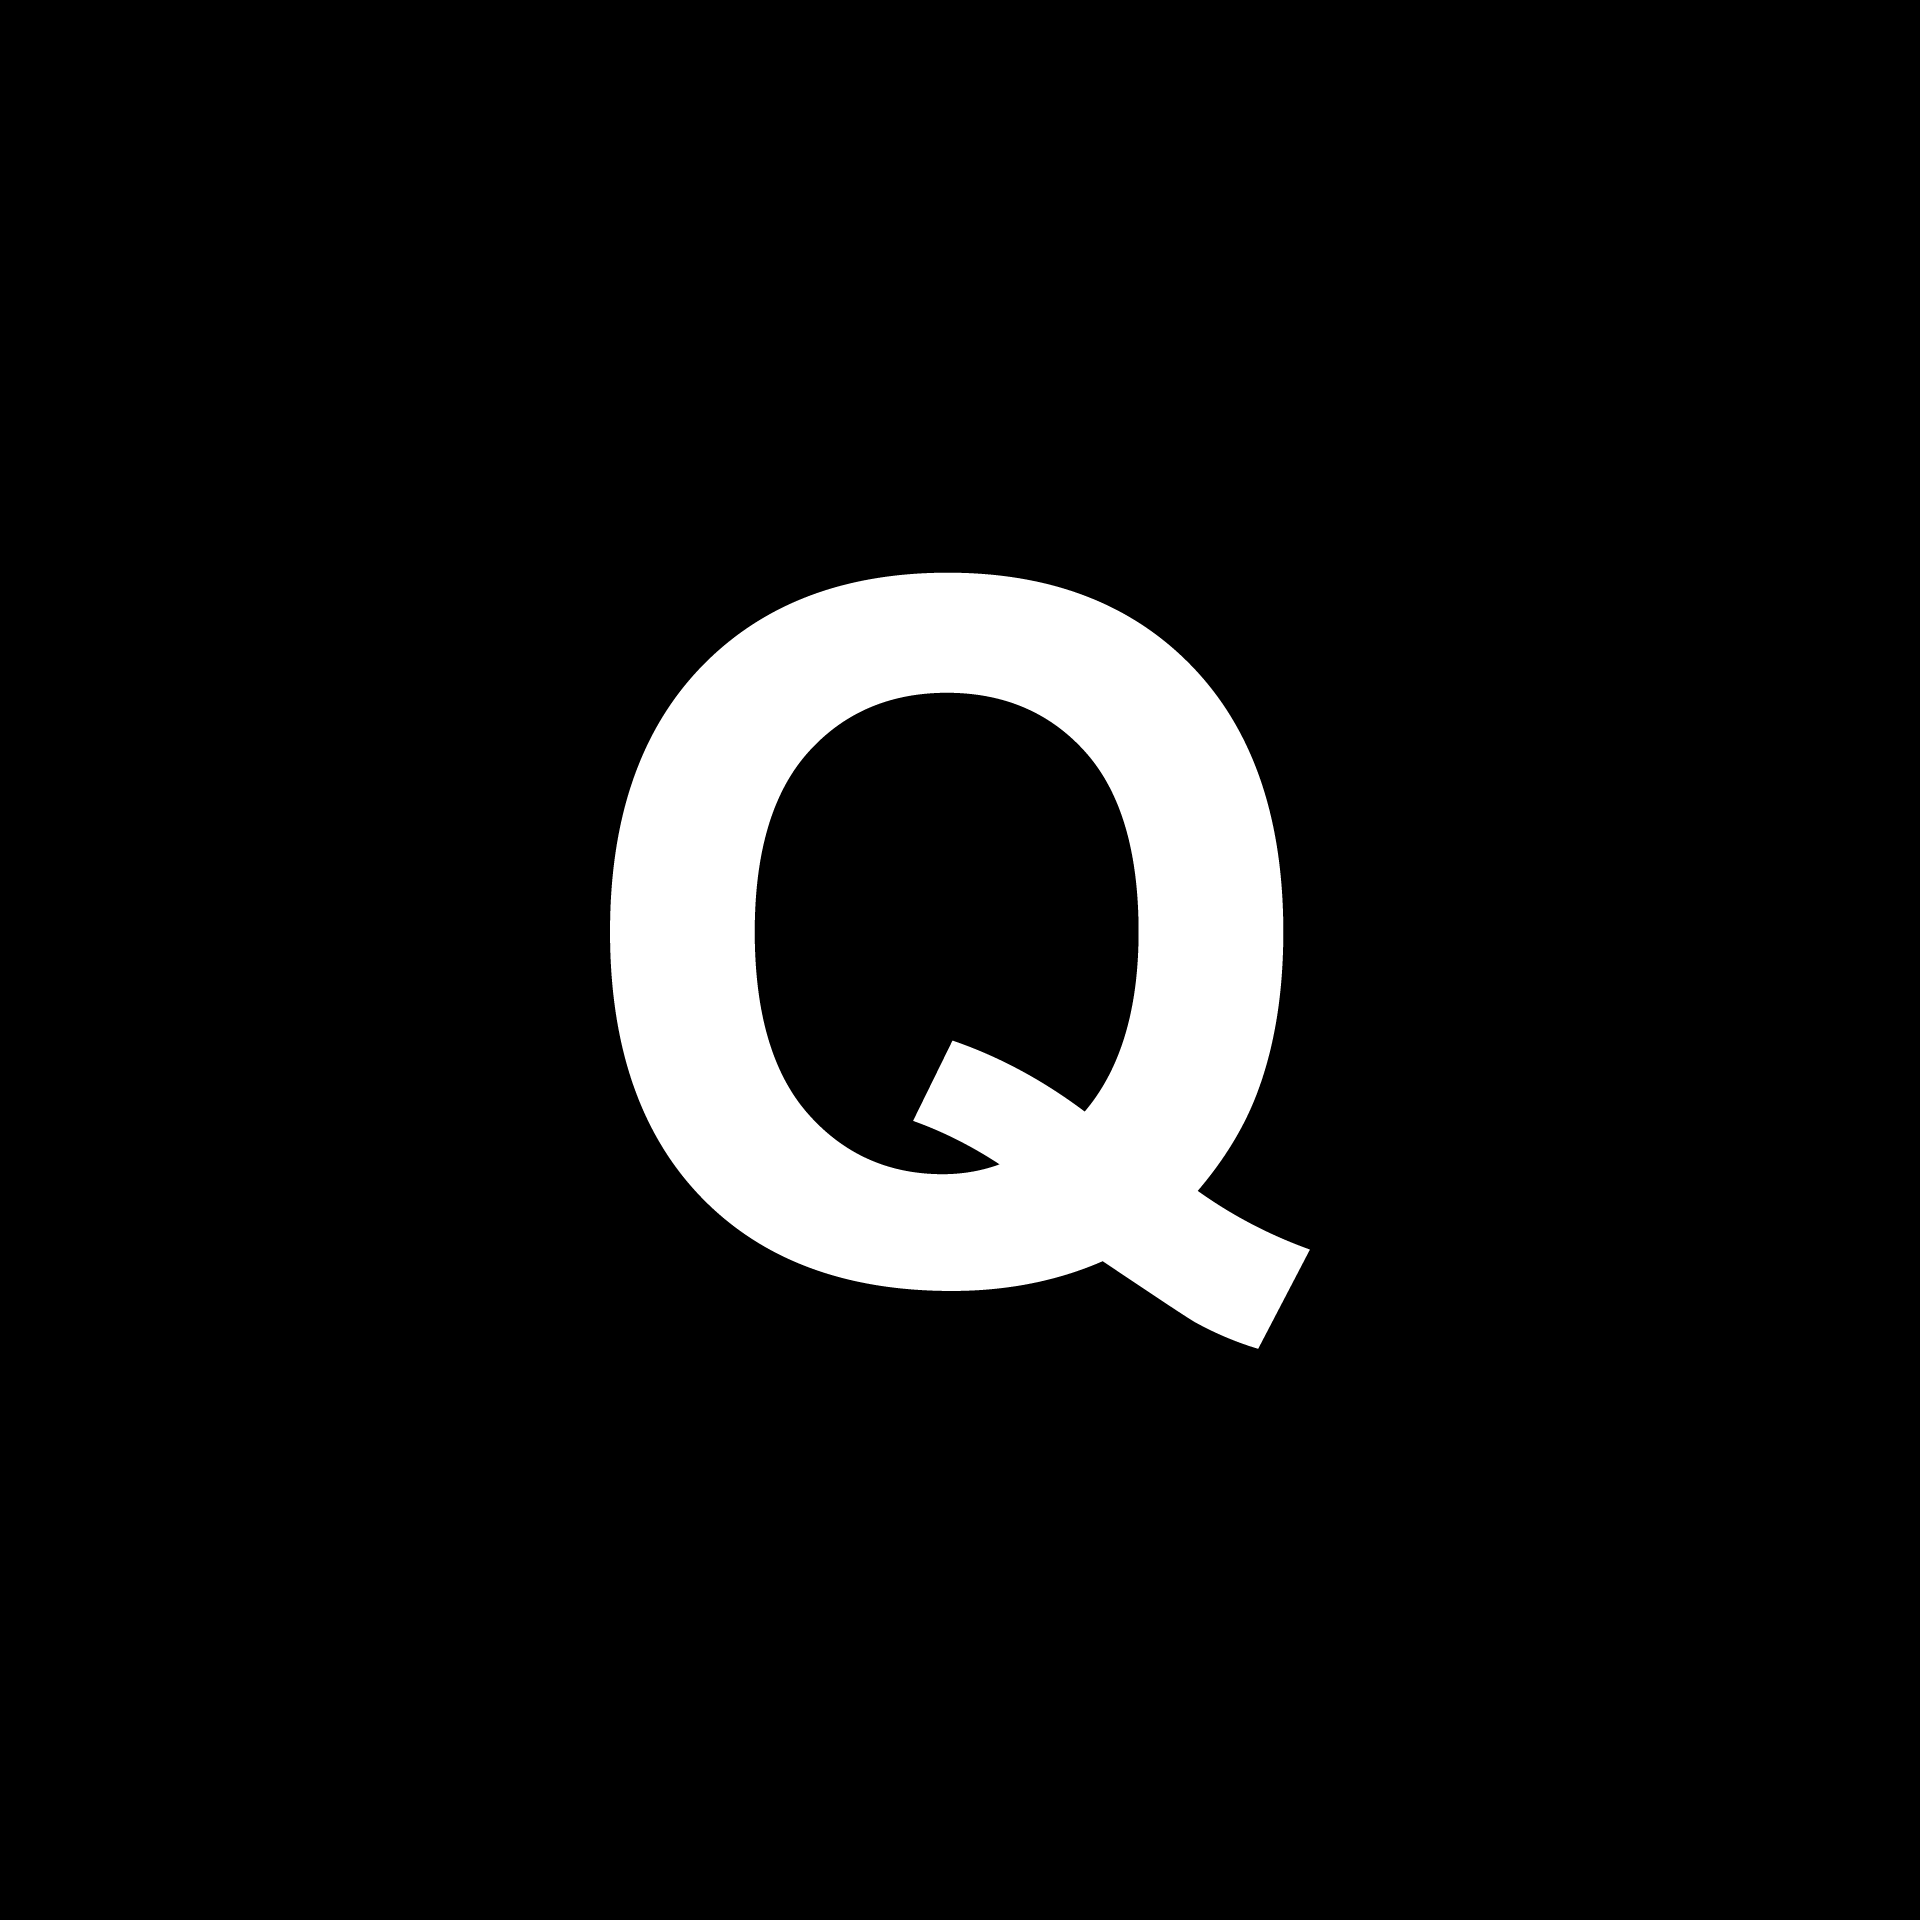 A graphic which says the letter 'Q'